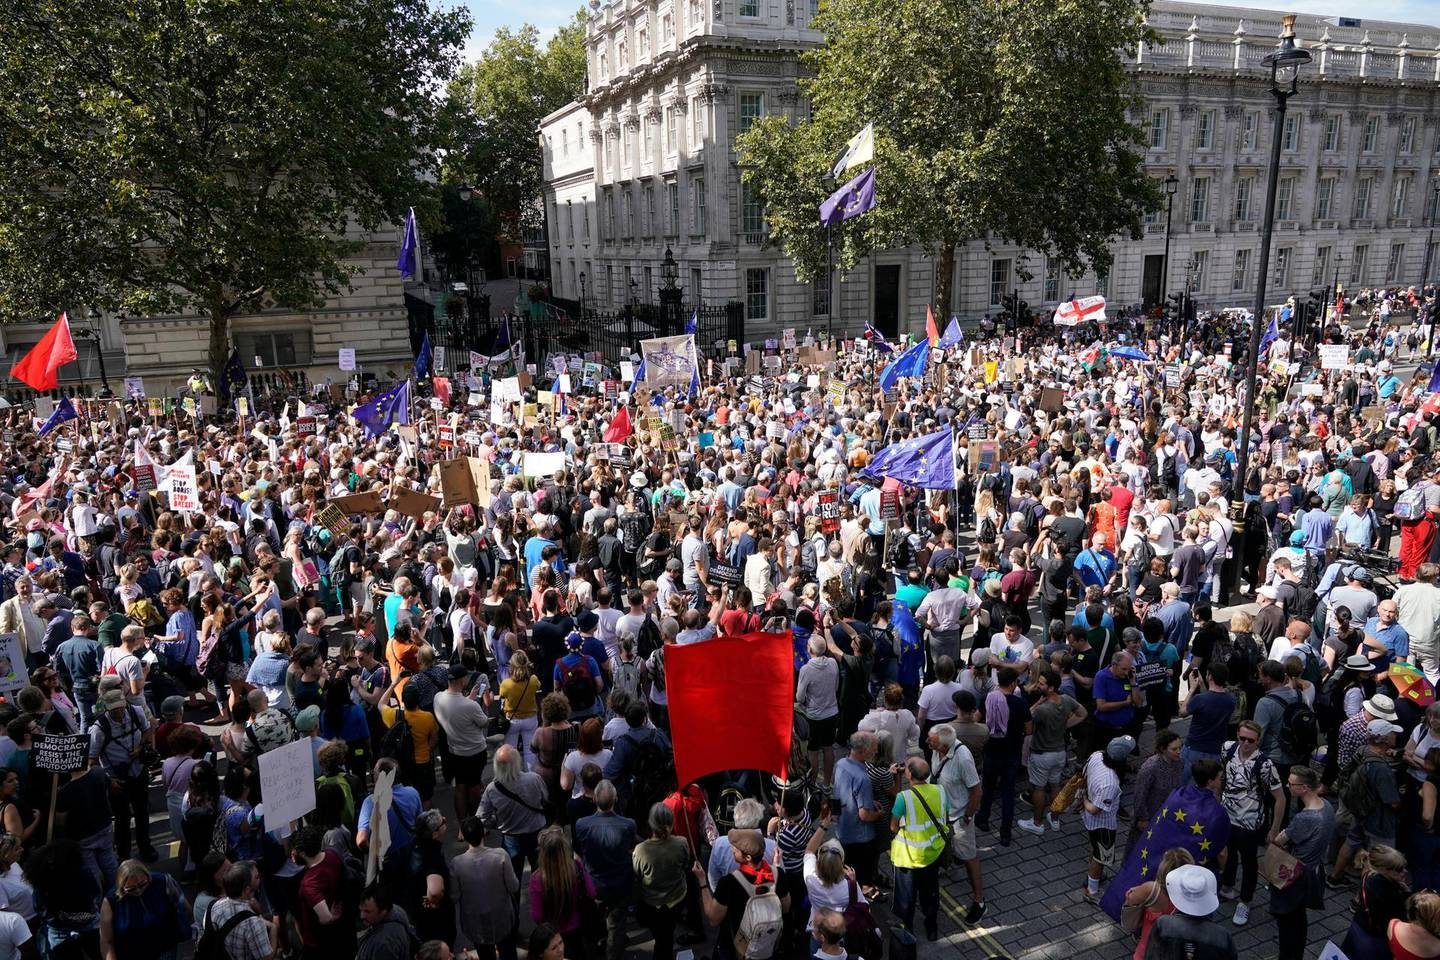 """LONDON, ENGLAND - AUGUST 31: Anti-Brexit demonstrators protest in Whitehall on August 31, 2019 in London, England. Left-wing group Momentum and the People's Assembly are coordinating a series of """"Stop The Coup"""" protests across the UK aimed at Boris Johnson and the UK government proroguing Parliament. (Photo by Chris Furlong/Getty Images)"""